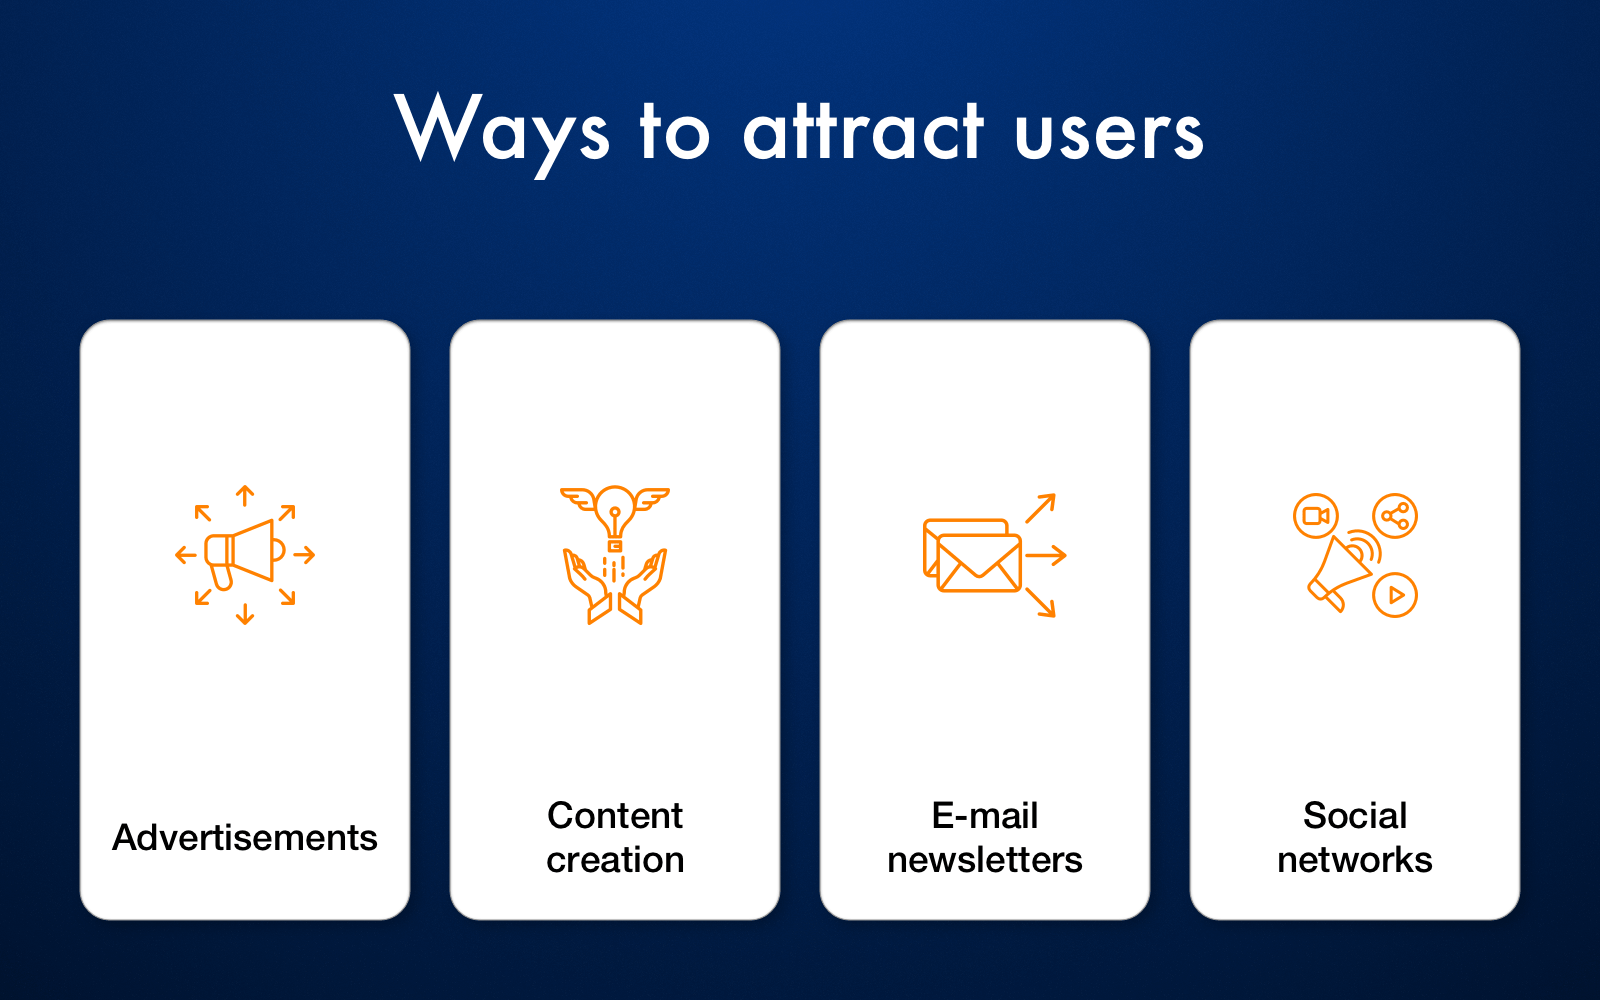 Q&A website. 4 Ways to Attract Users